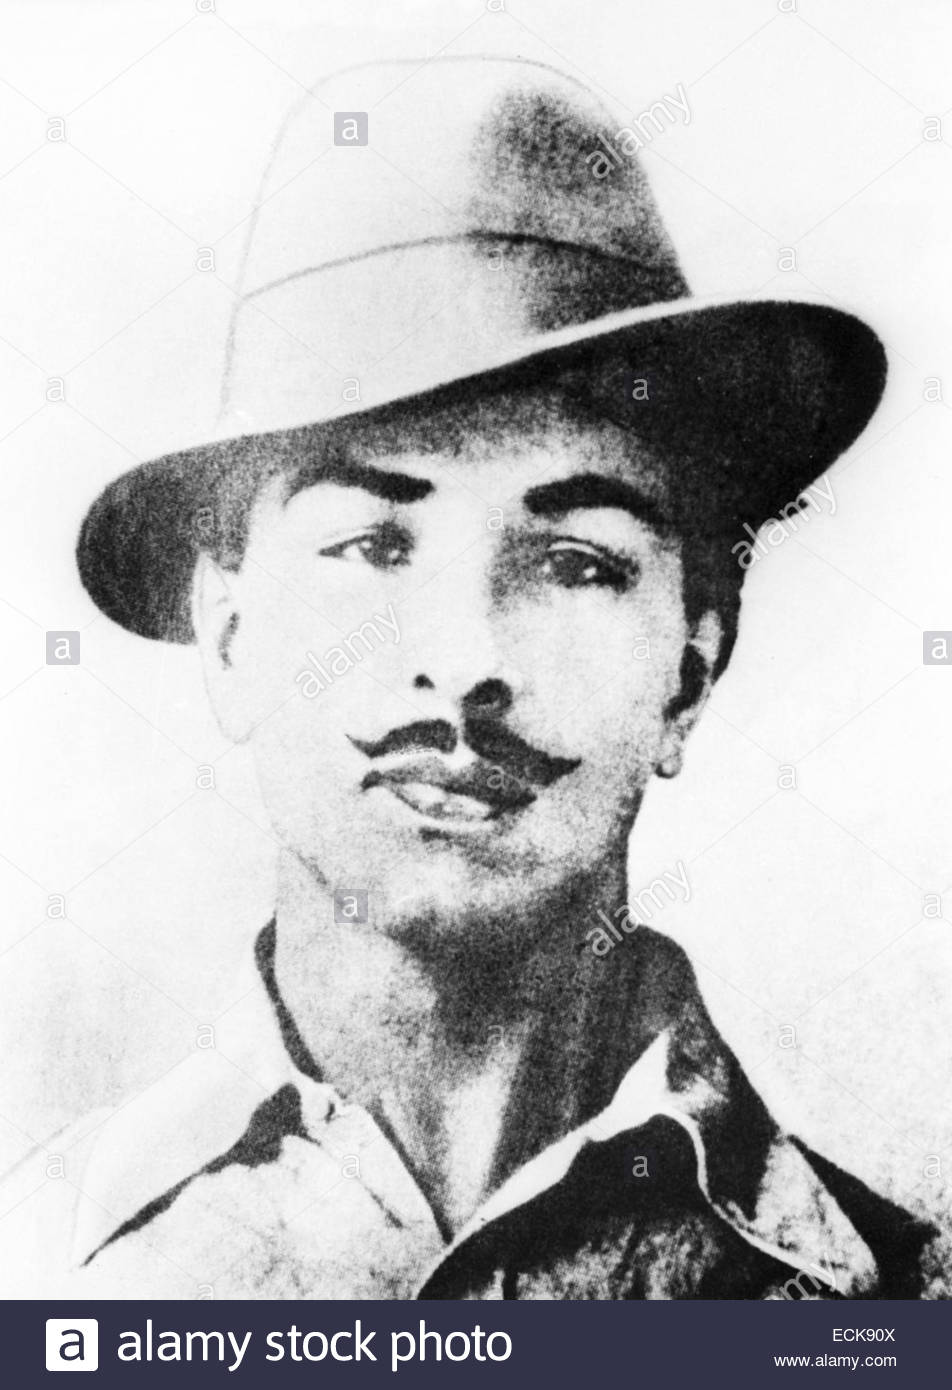 Bhagat Singh Stock Photos Bhagat Singh Stock Images Alamy